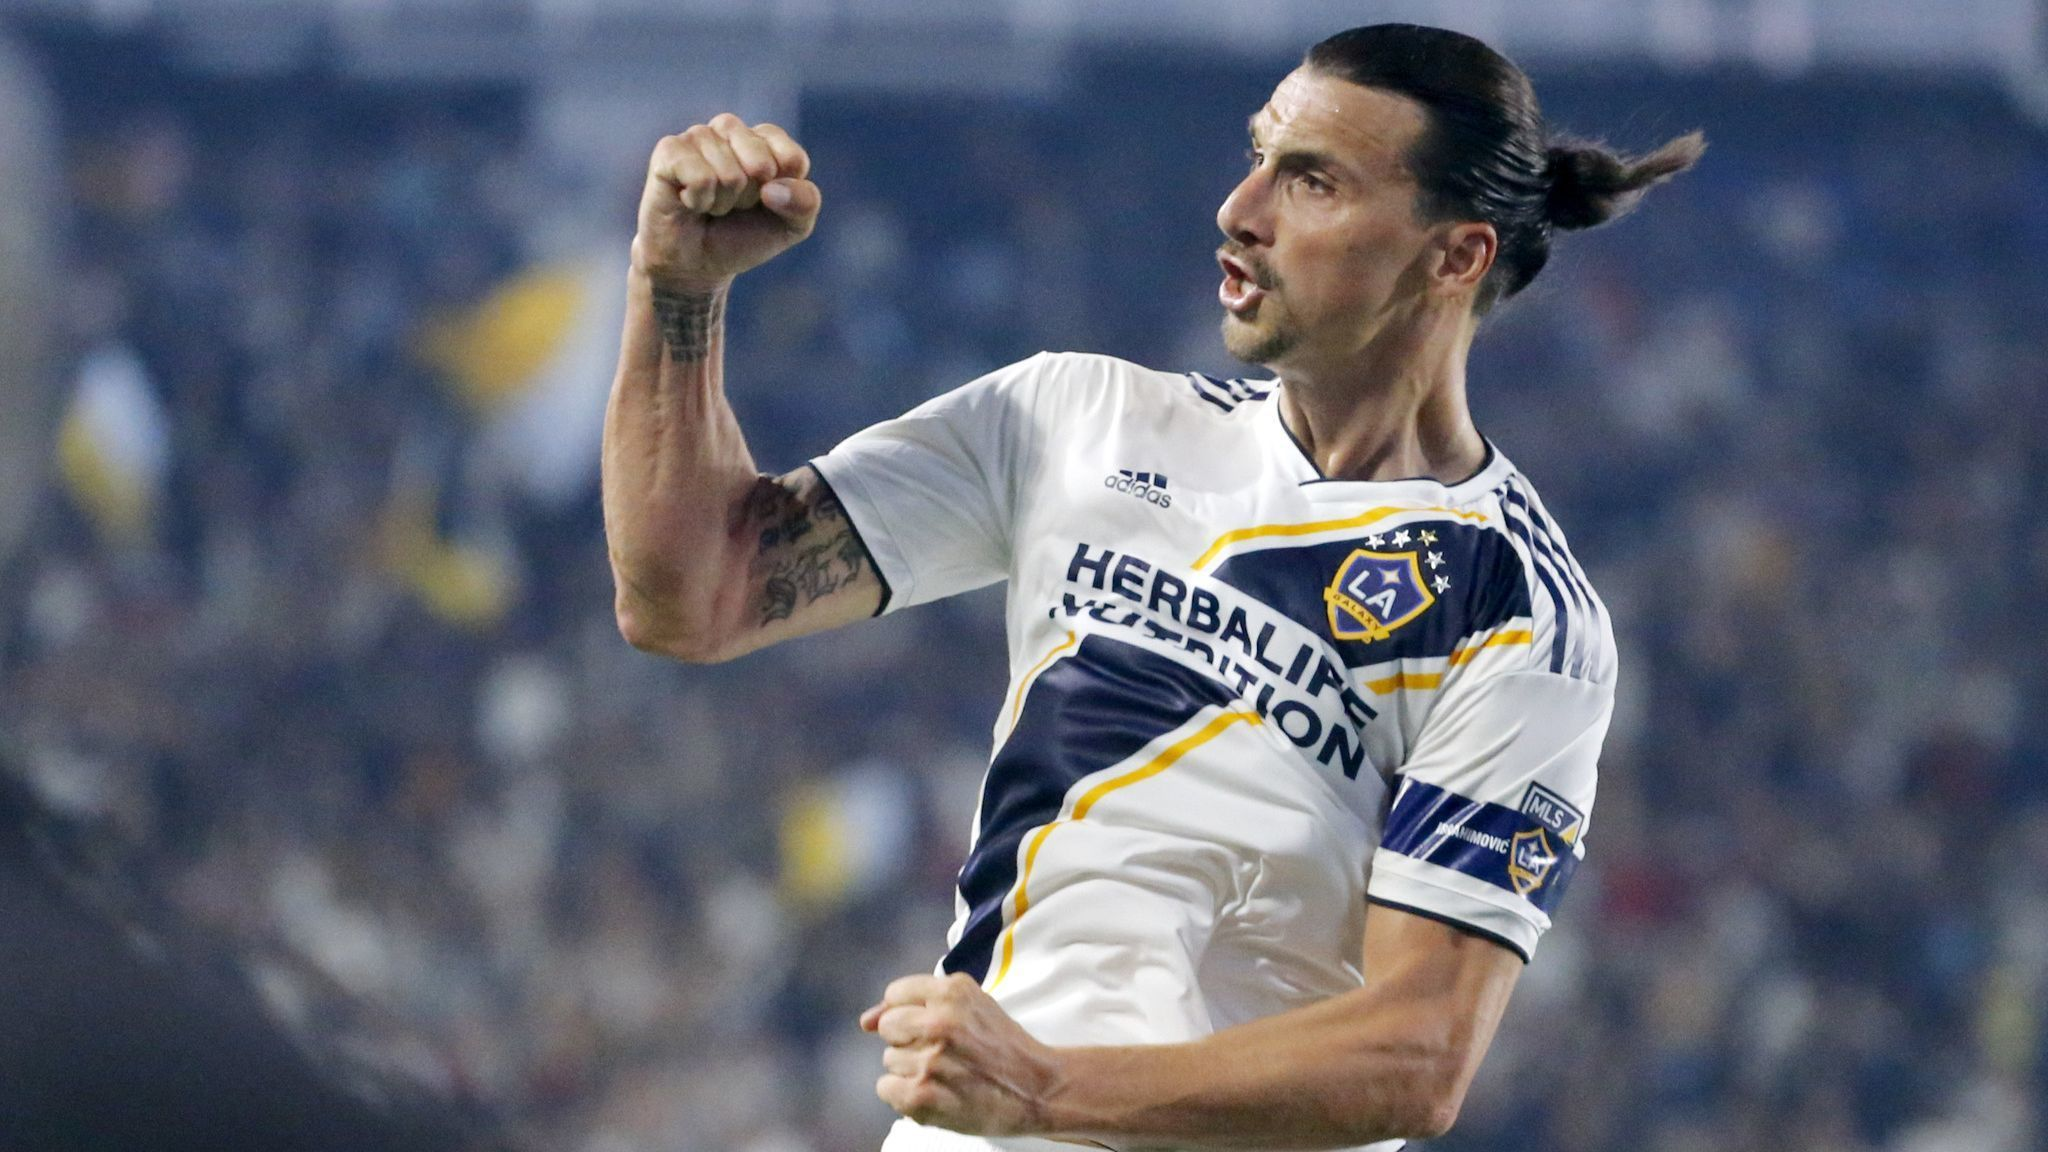 El Trafico: Zlatan Ibrahimovic's hat trick gets Galaxy the victory in testy match with LAFC